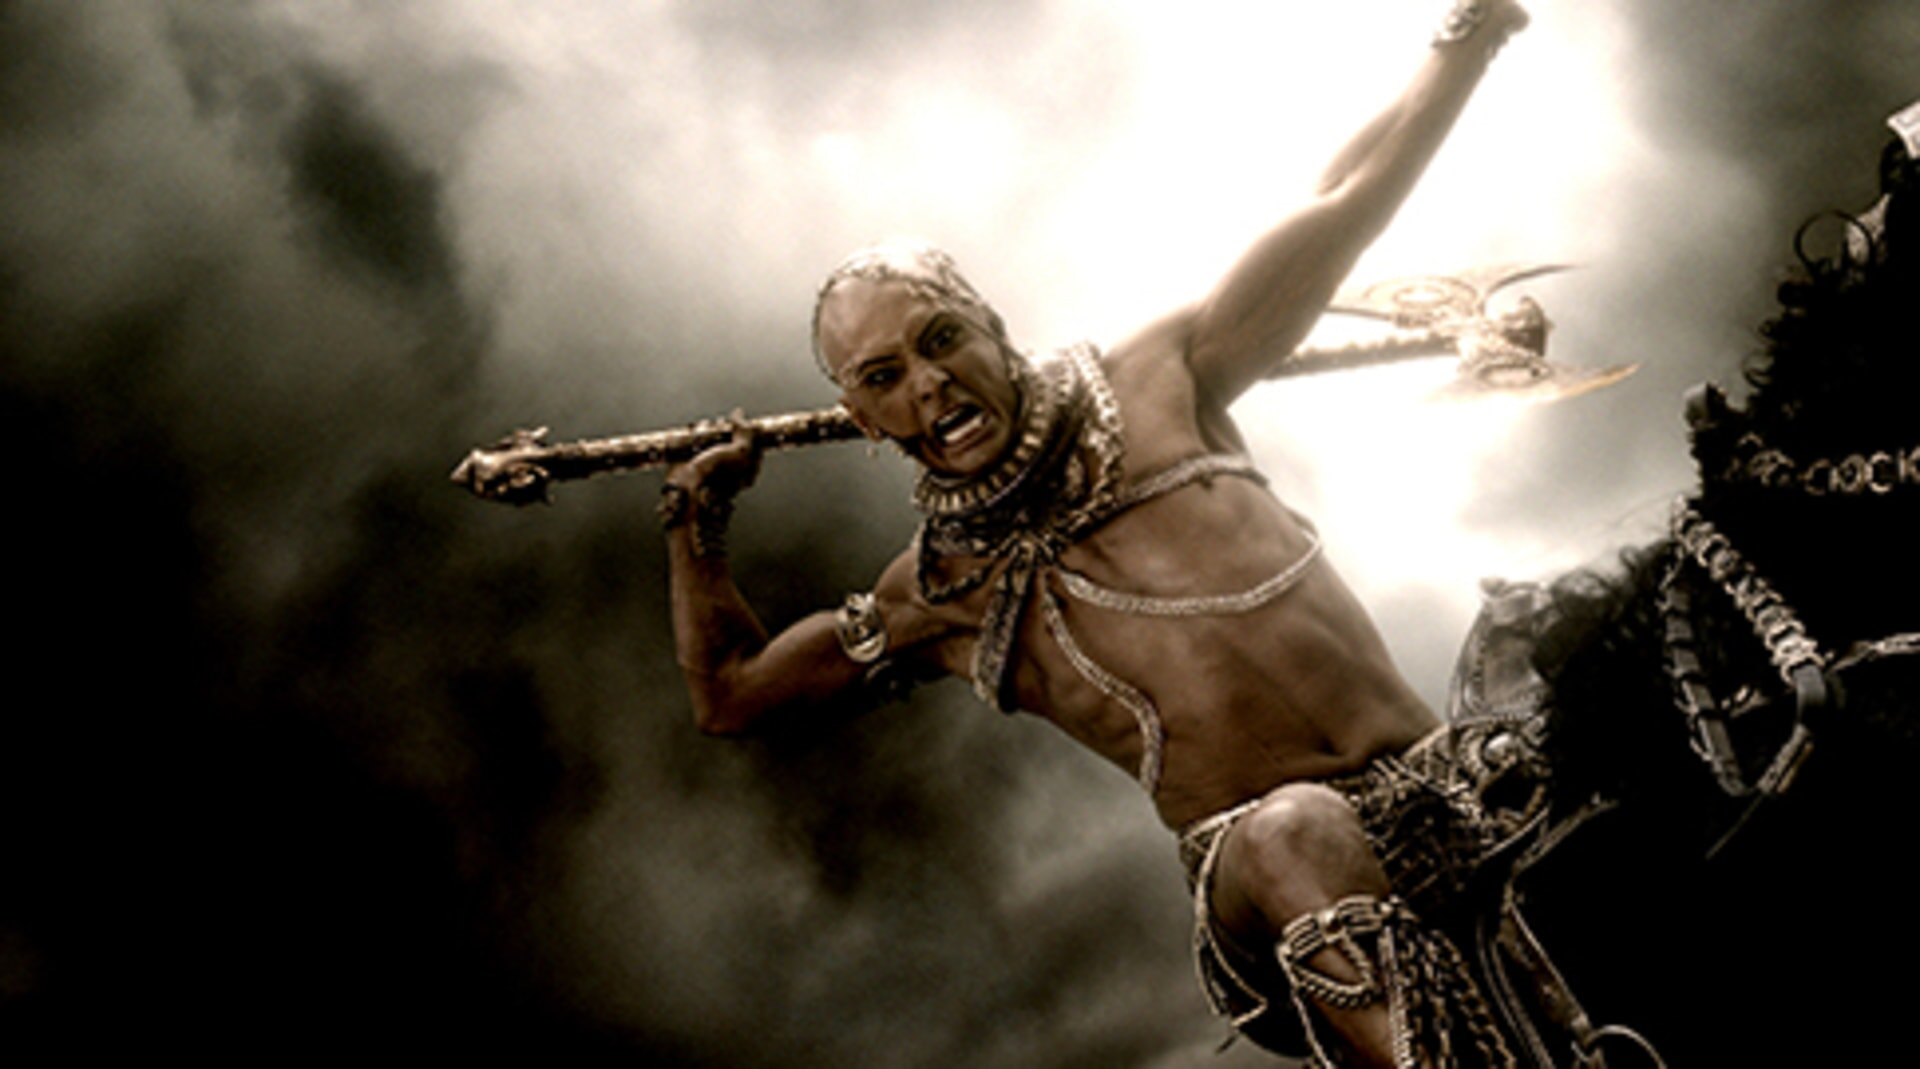 300: Rise of an Empire - Image 11